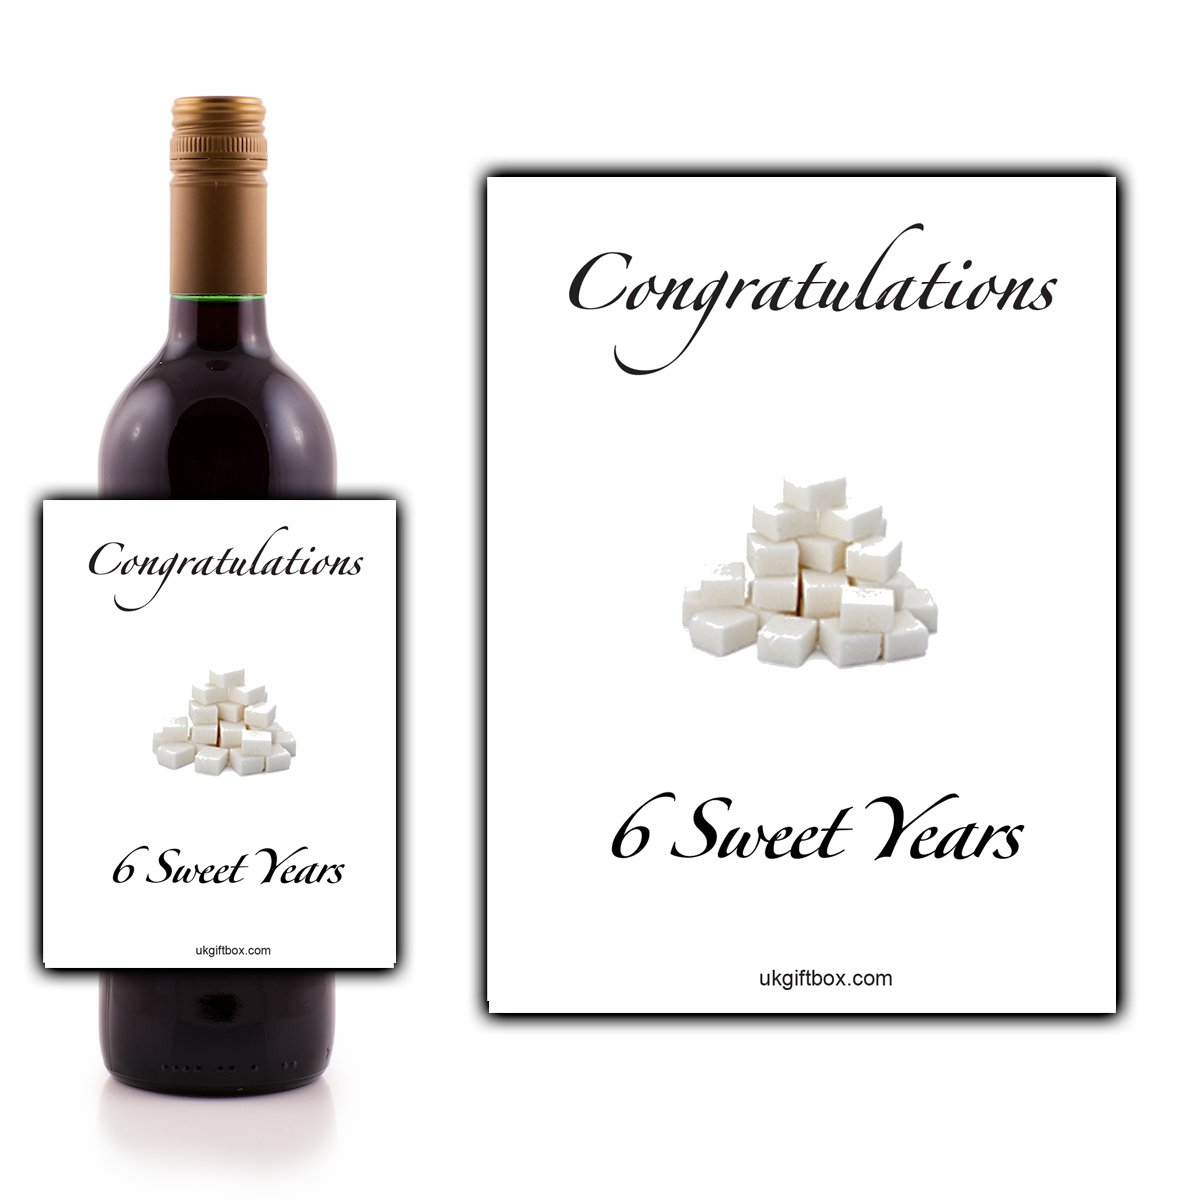 Congratulations 6 sweet years Wine Bottle Label - perfect for adding that special touch to a 6th anniversary present ukgiftbox